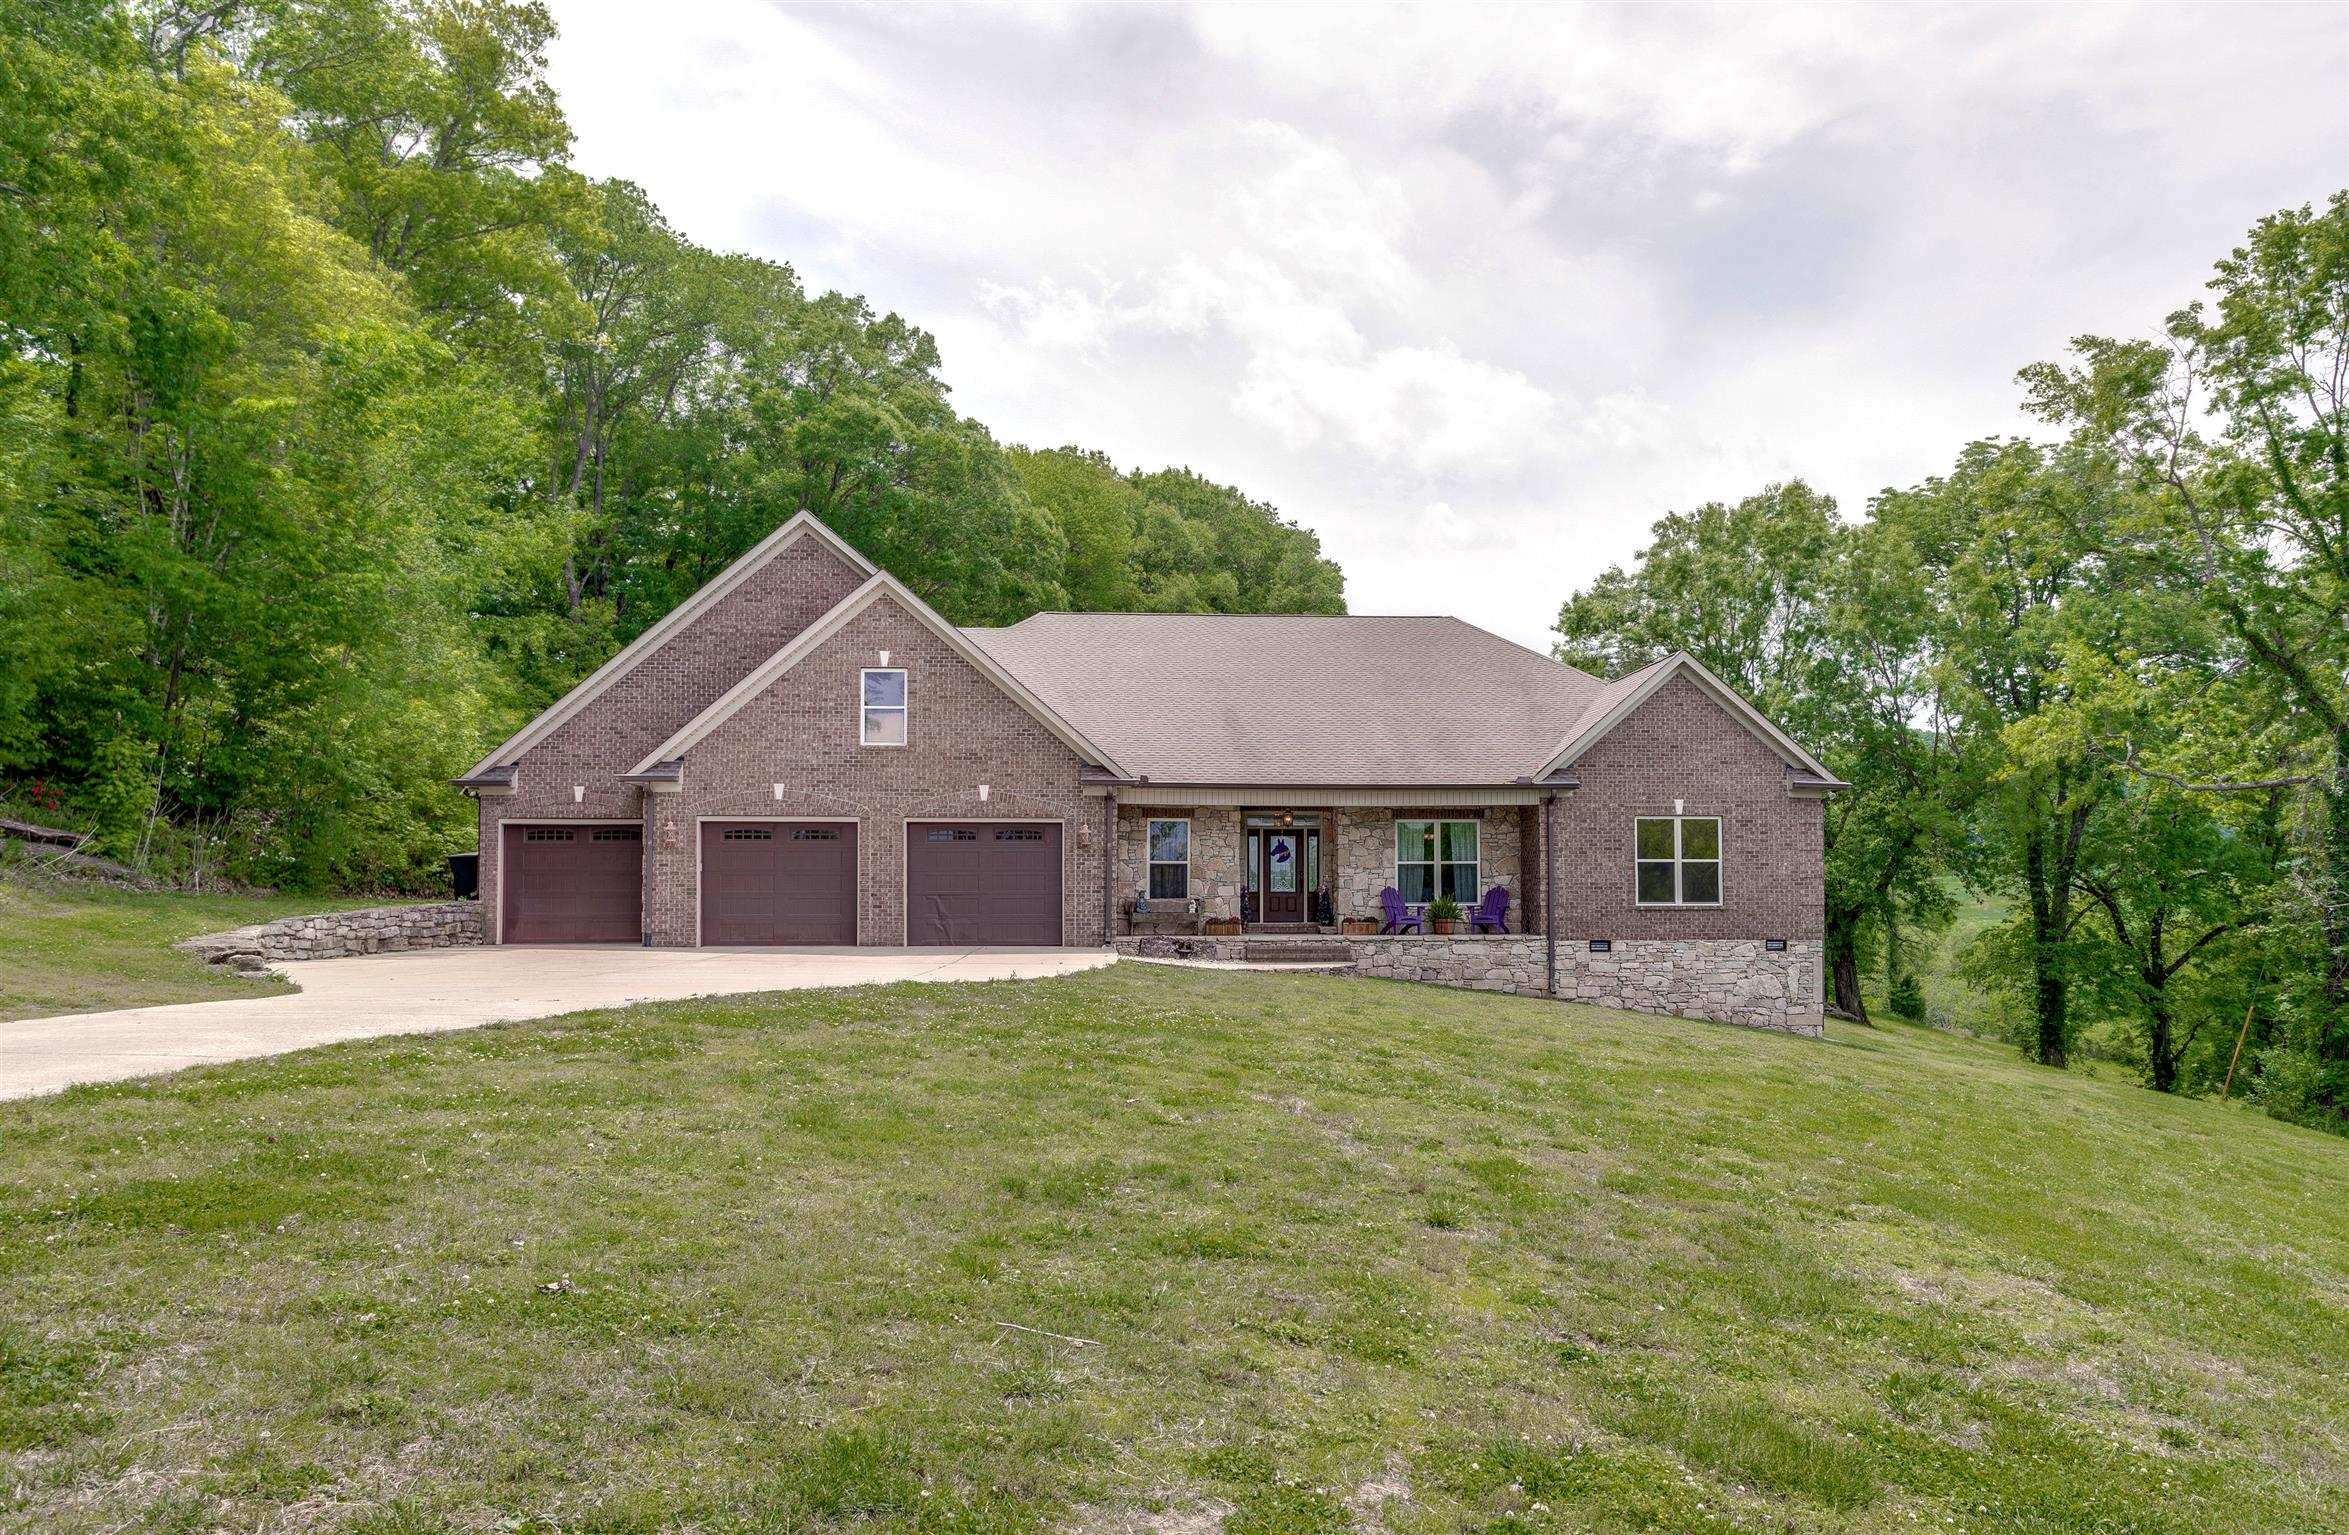 4003 Catheys Creek Rd, Hampshire, TN 38461 - Hampshire, TN real estate listing